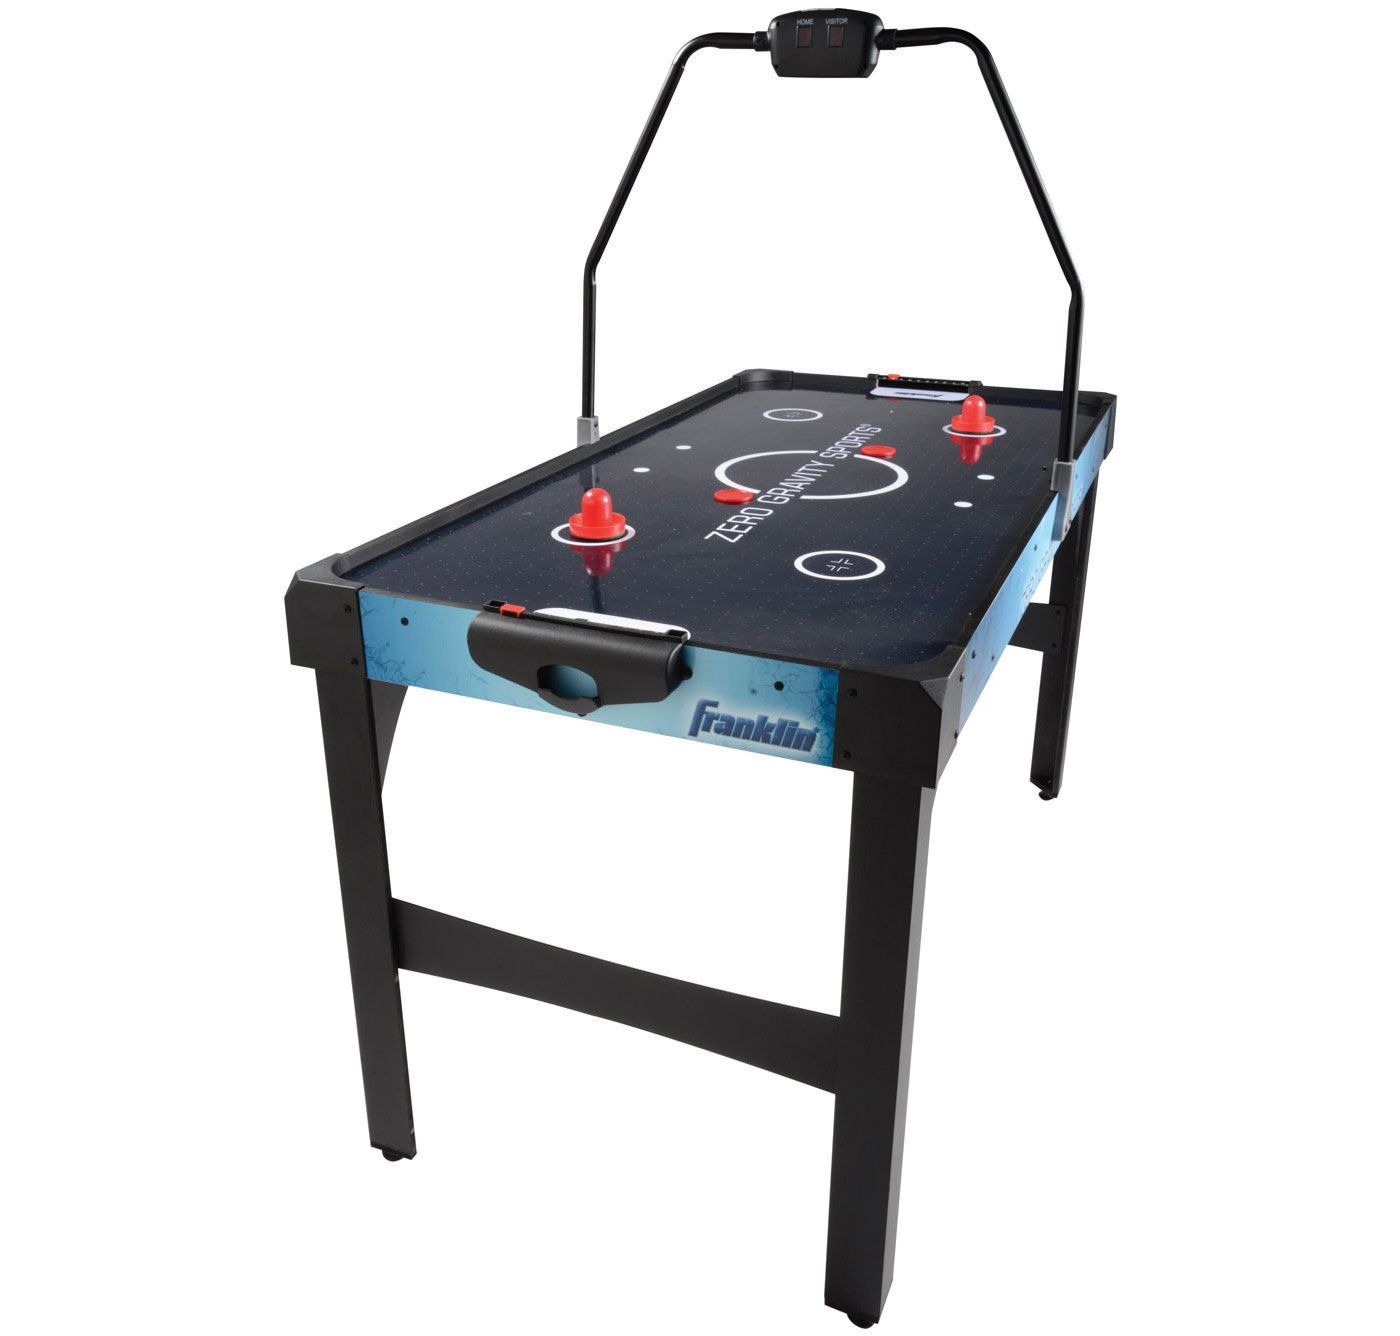 "Franklin 48"" Zero Gravity Sports Air Hockey Table"